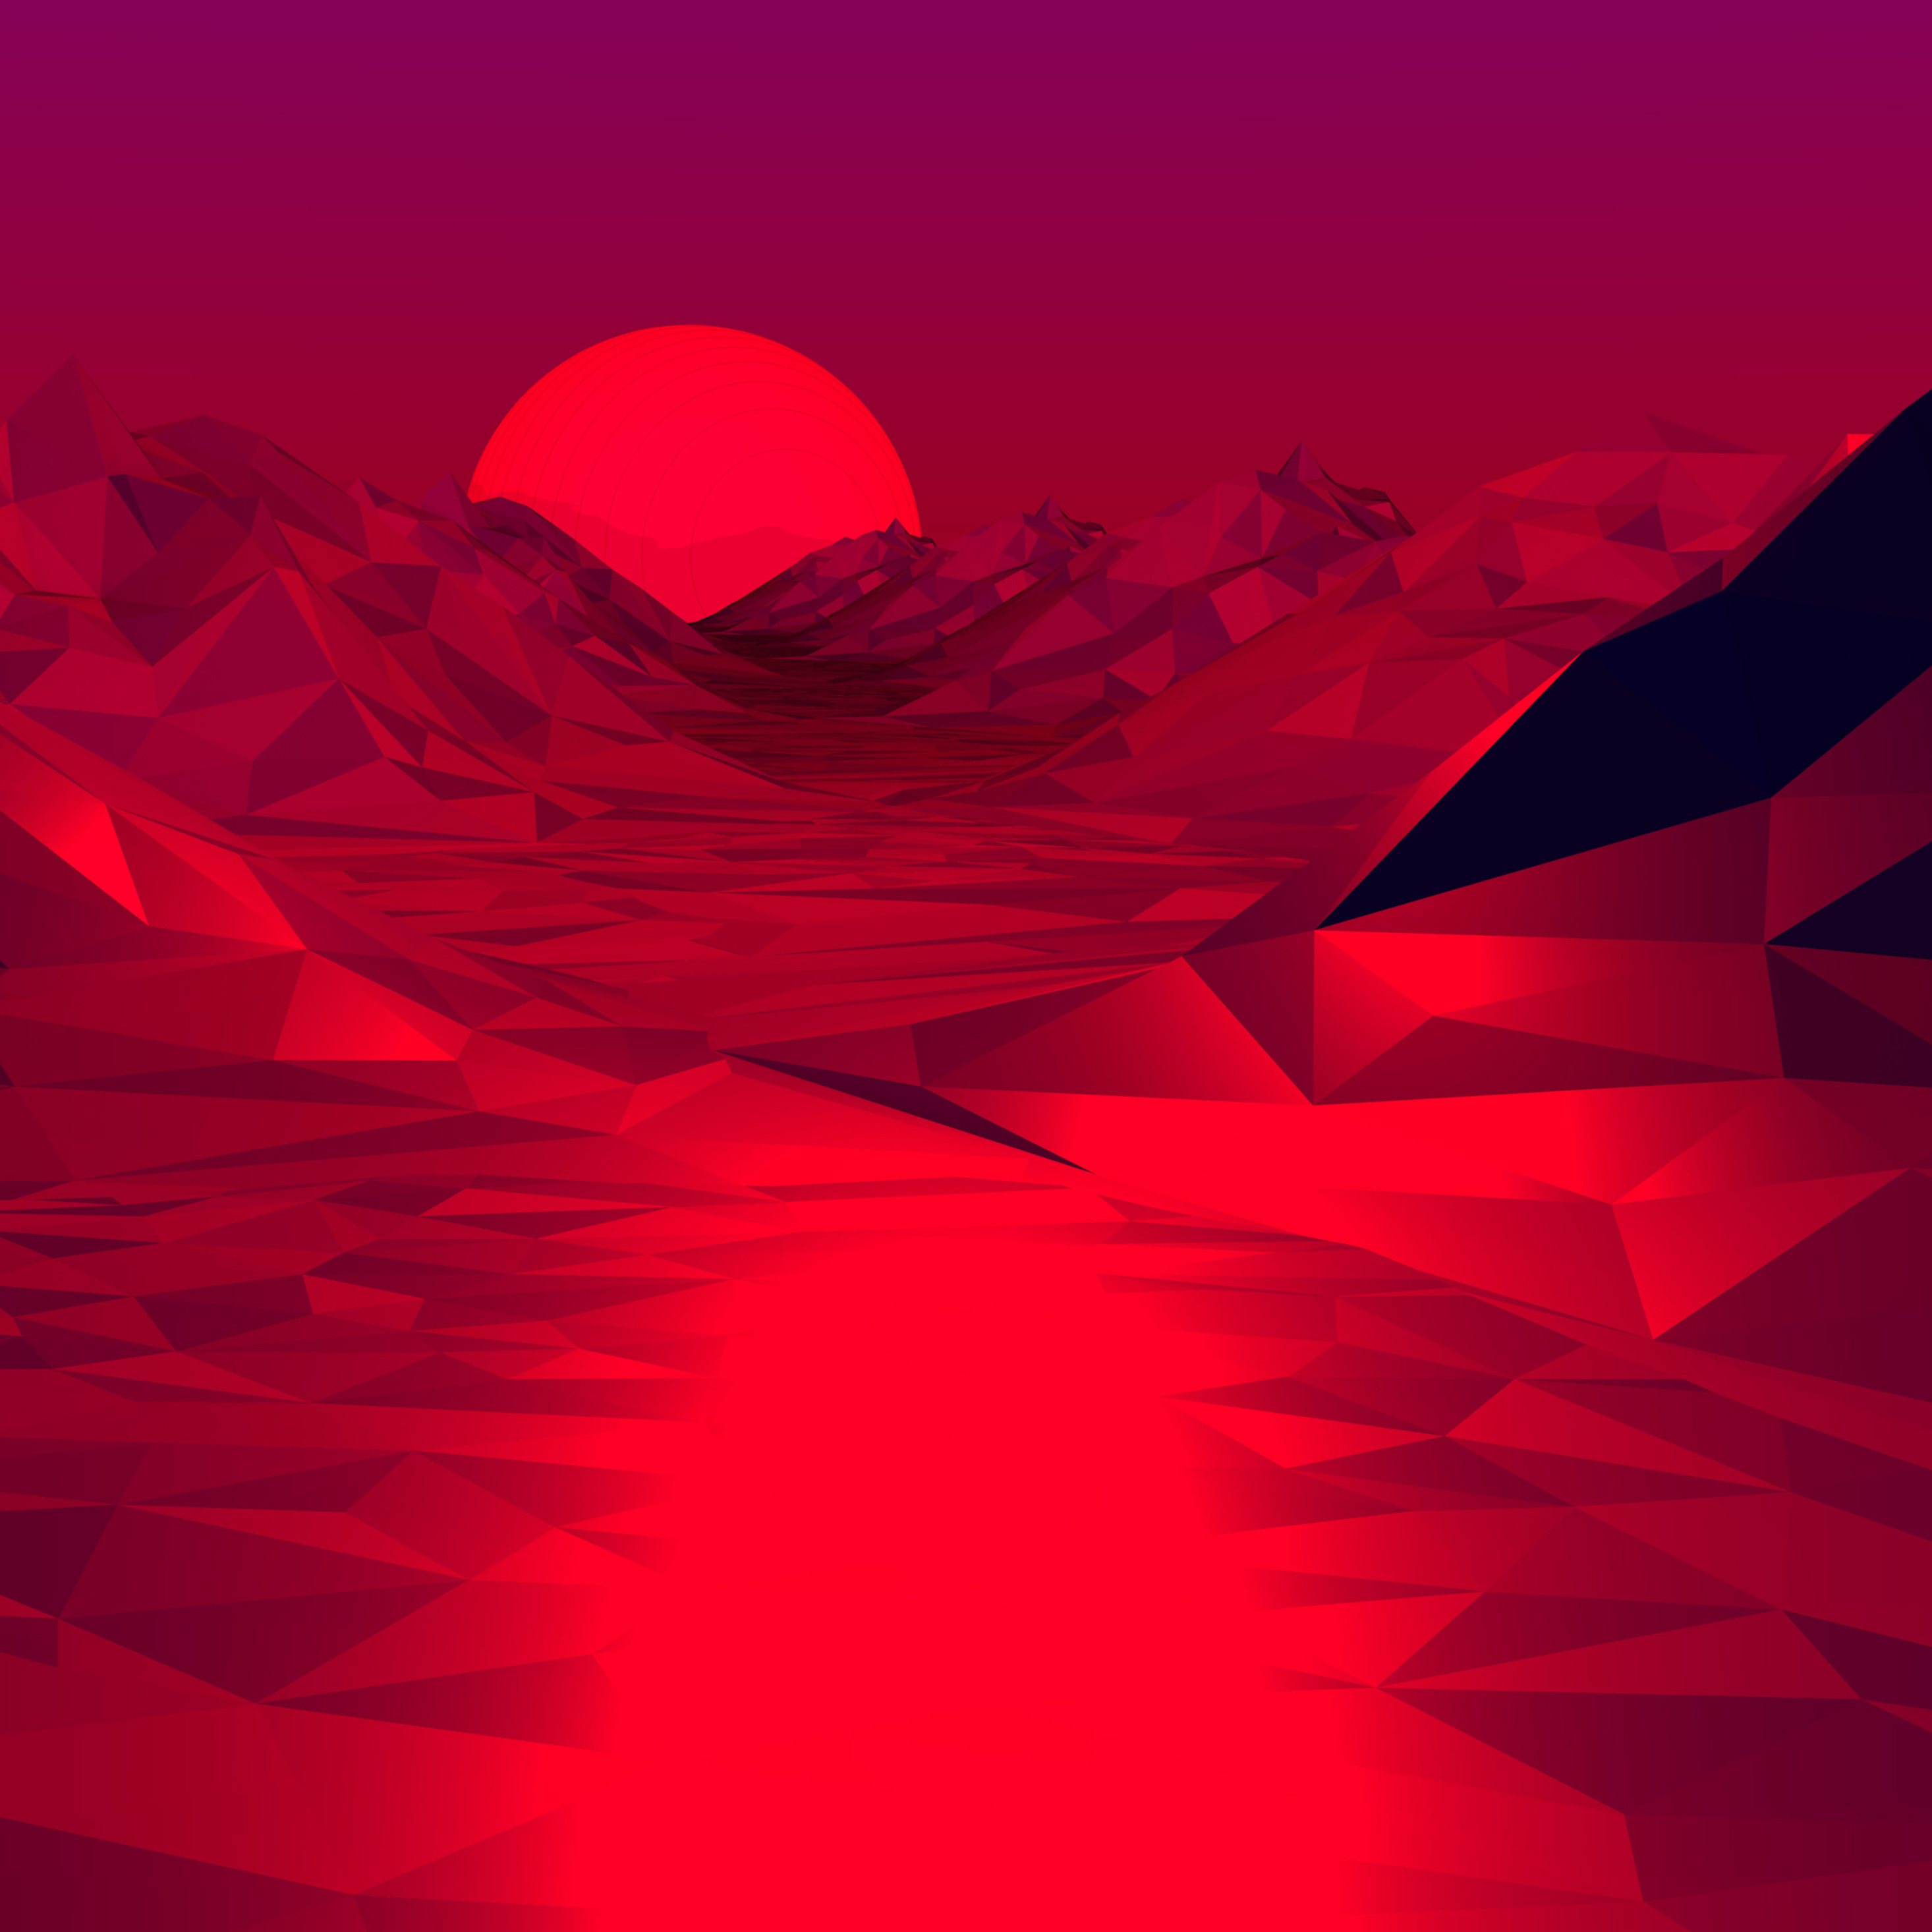 2932x2932 Low Poly Red 3d Abstract 4k Ipad Pro Retina